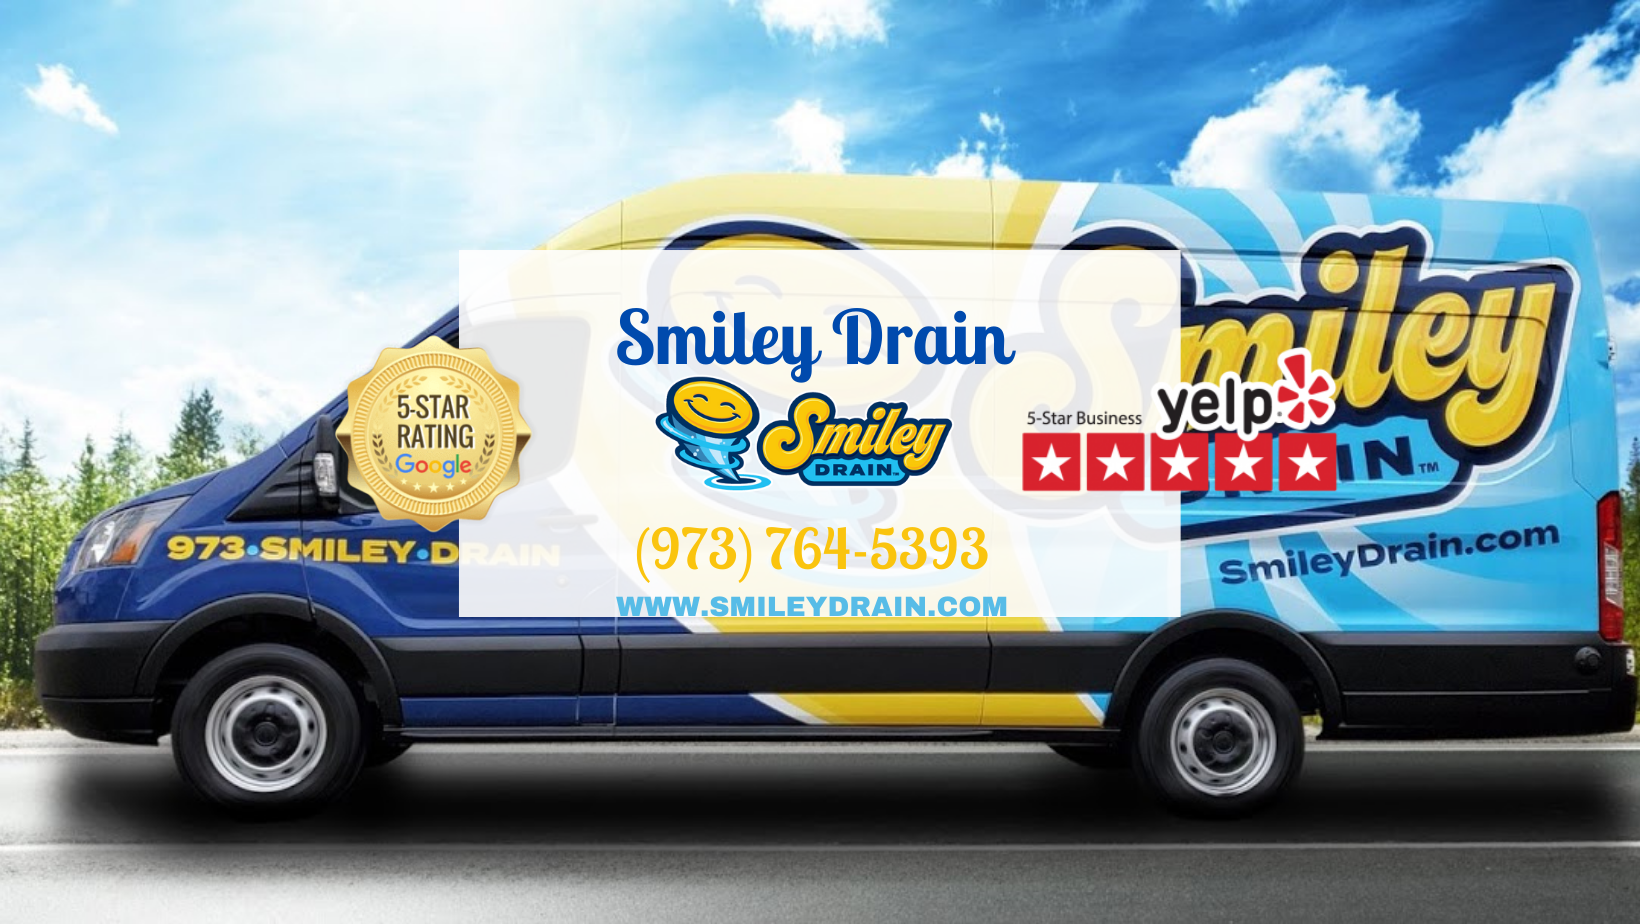 sewer & Drain Cleaning services